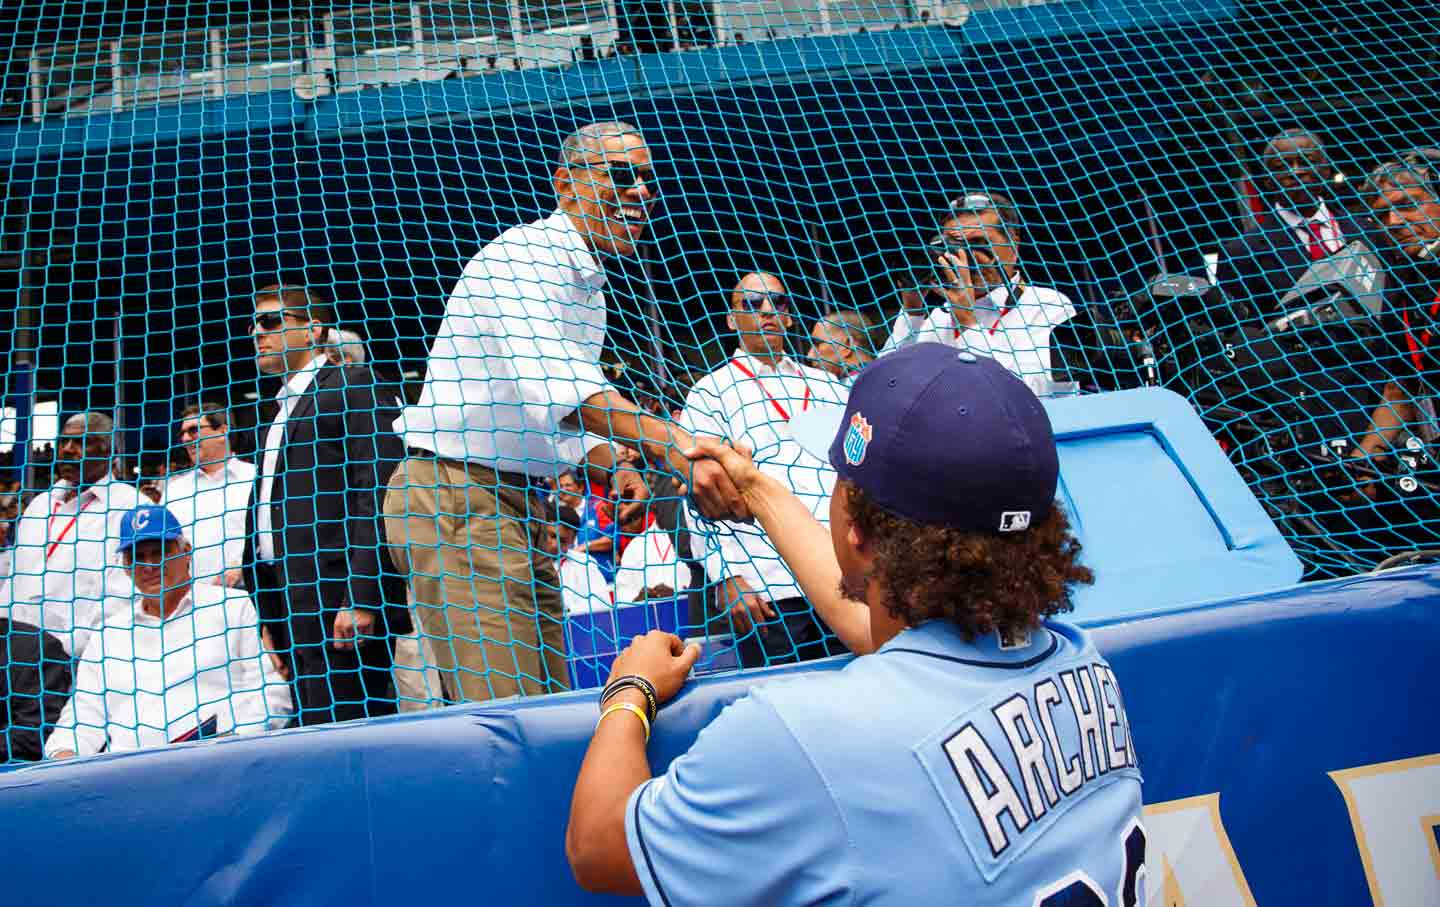 Obama at a baseball game in Havana